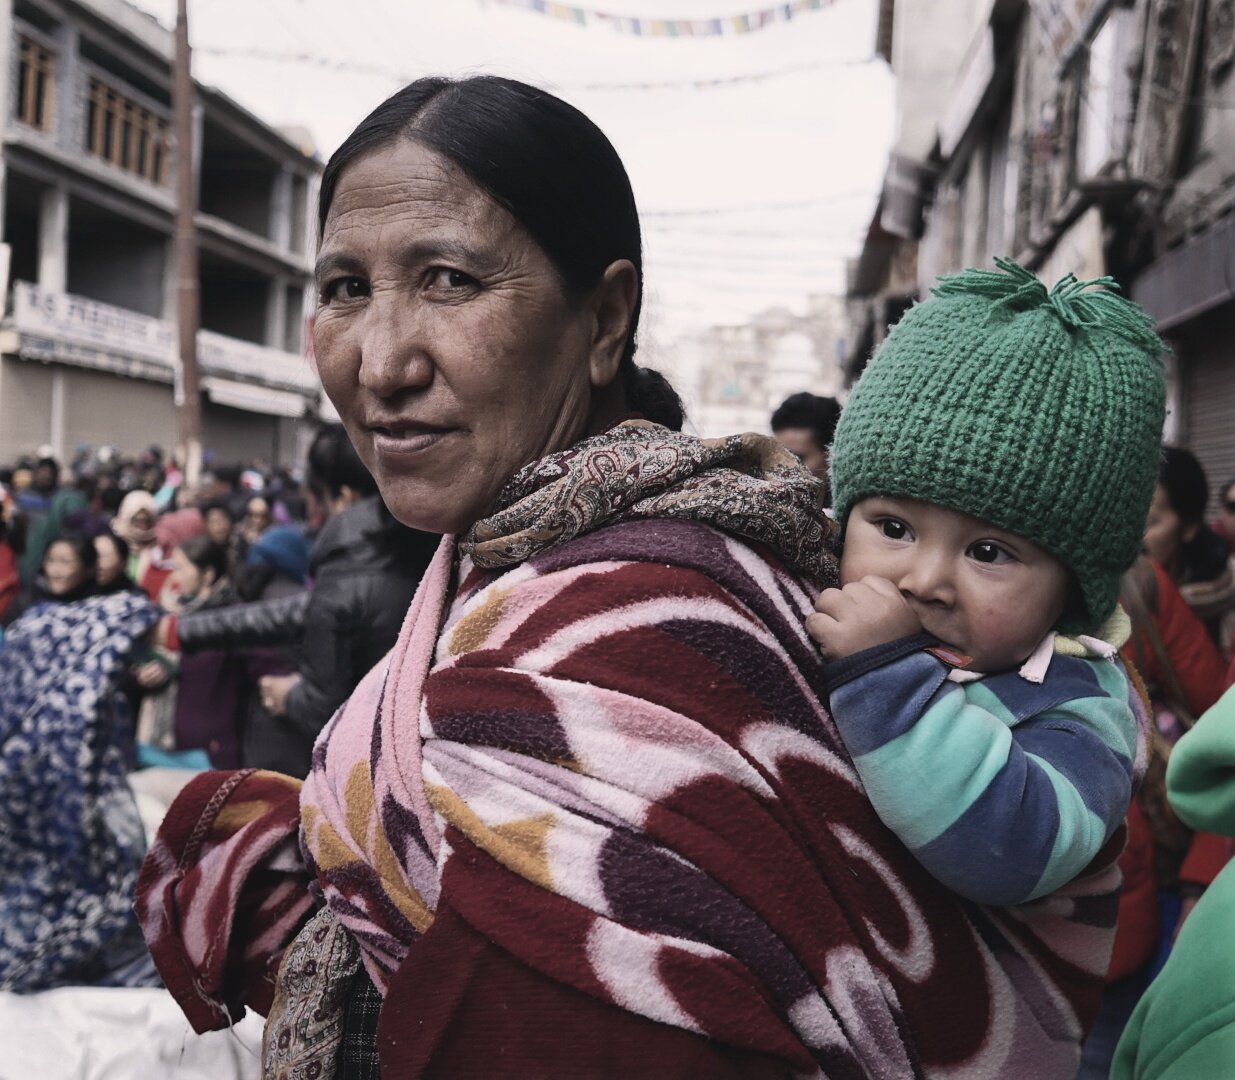 taken using my sigma lens, one of the best prime travel lens with the sony camera. It was shot at a busy market in leh, Ladakh, India.